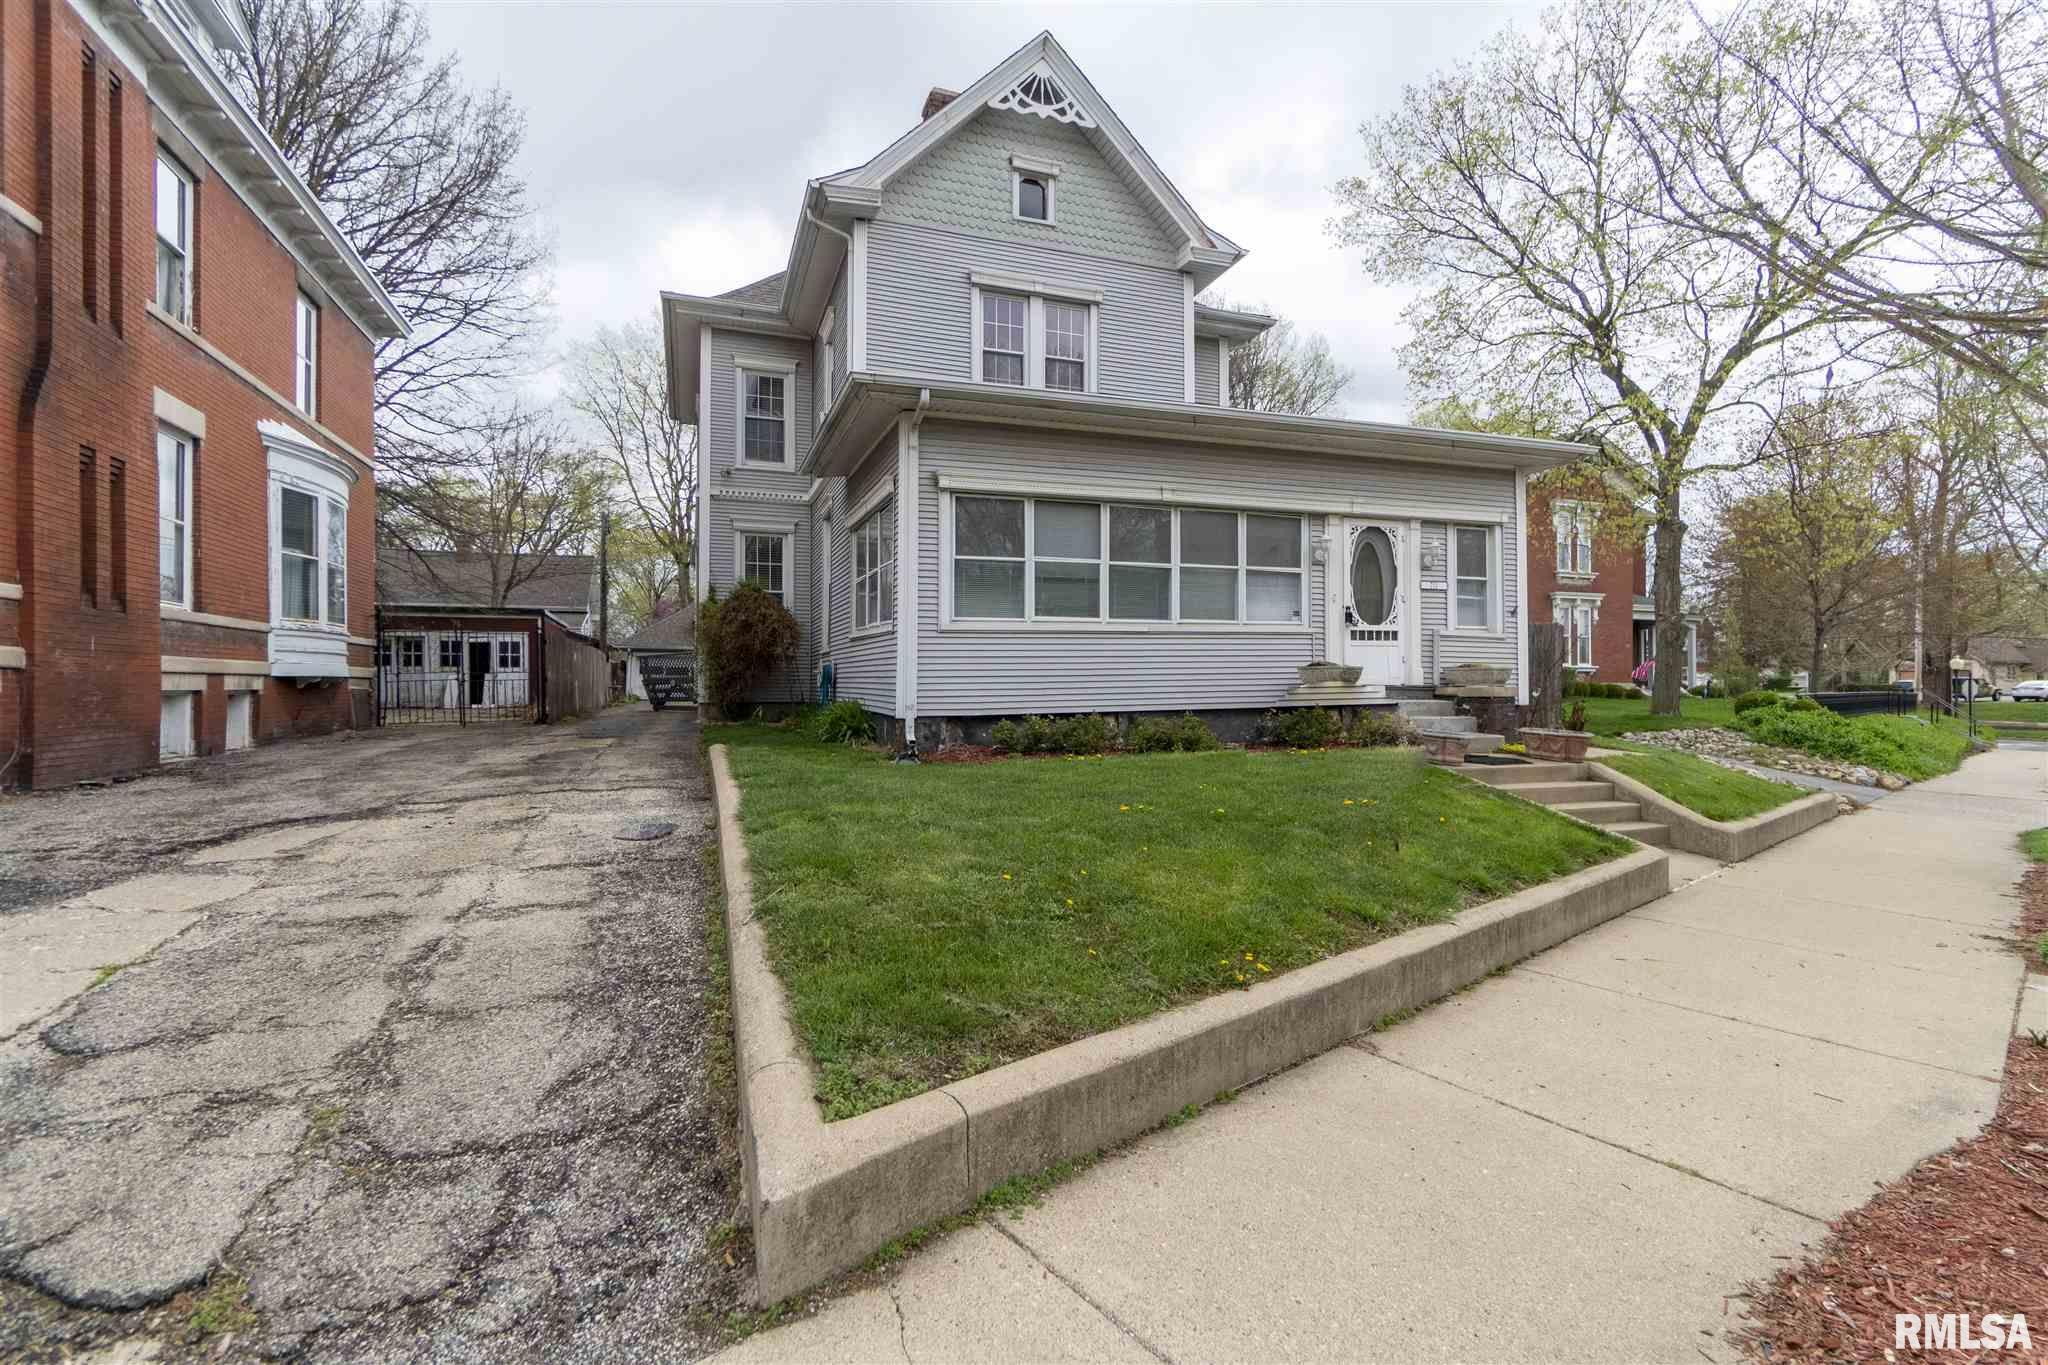 711 W MOSS Property Photo - Peoria, IL real estate listing